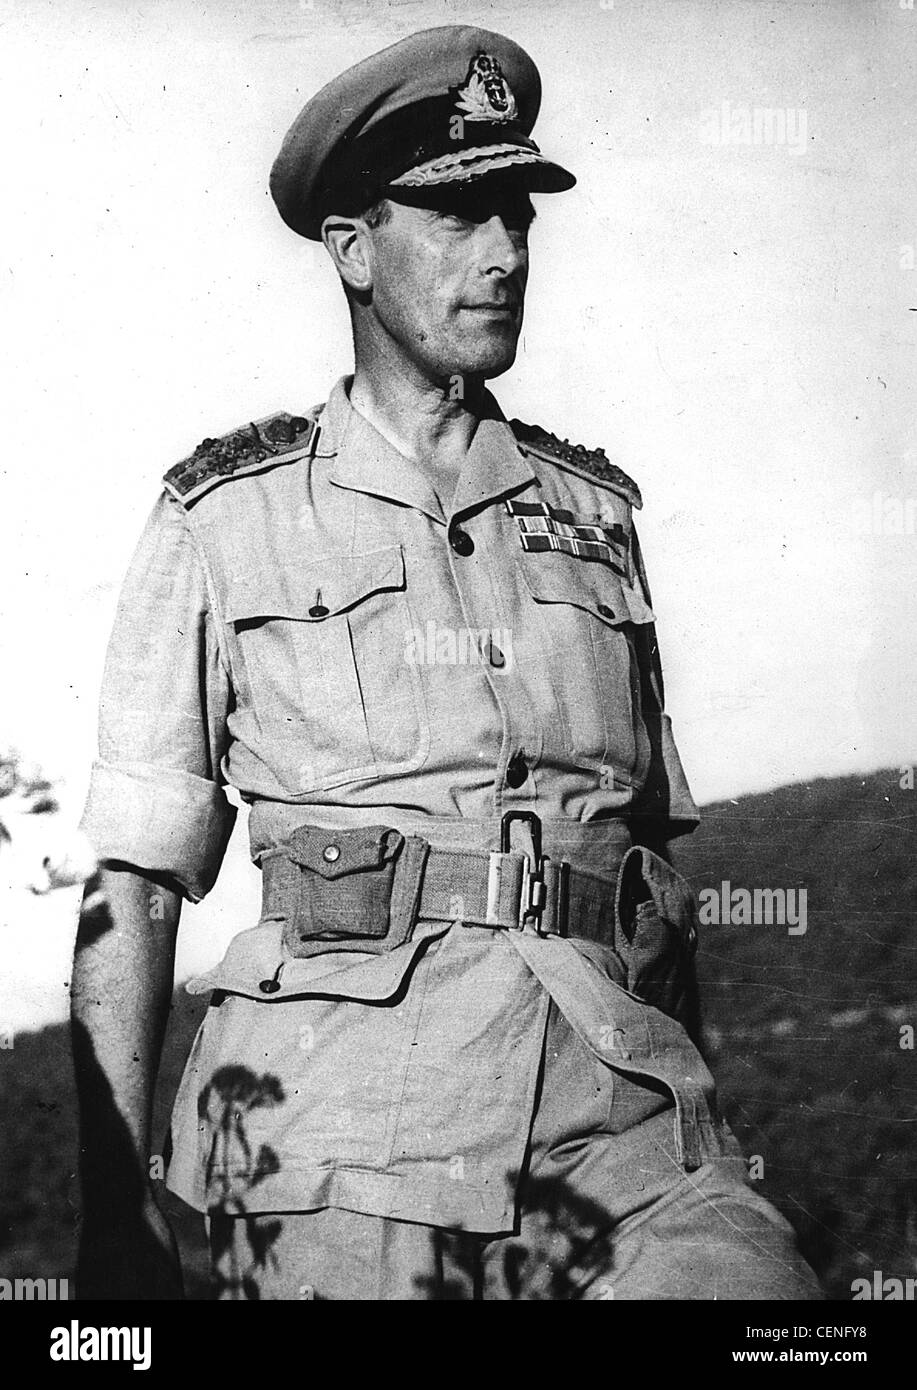 Admiral of the Fleet Louis Mountbatten, 1st Earl Mountbatten of Burma as head of Allied forces South East Asia Command - Stock Image